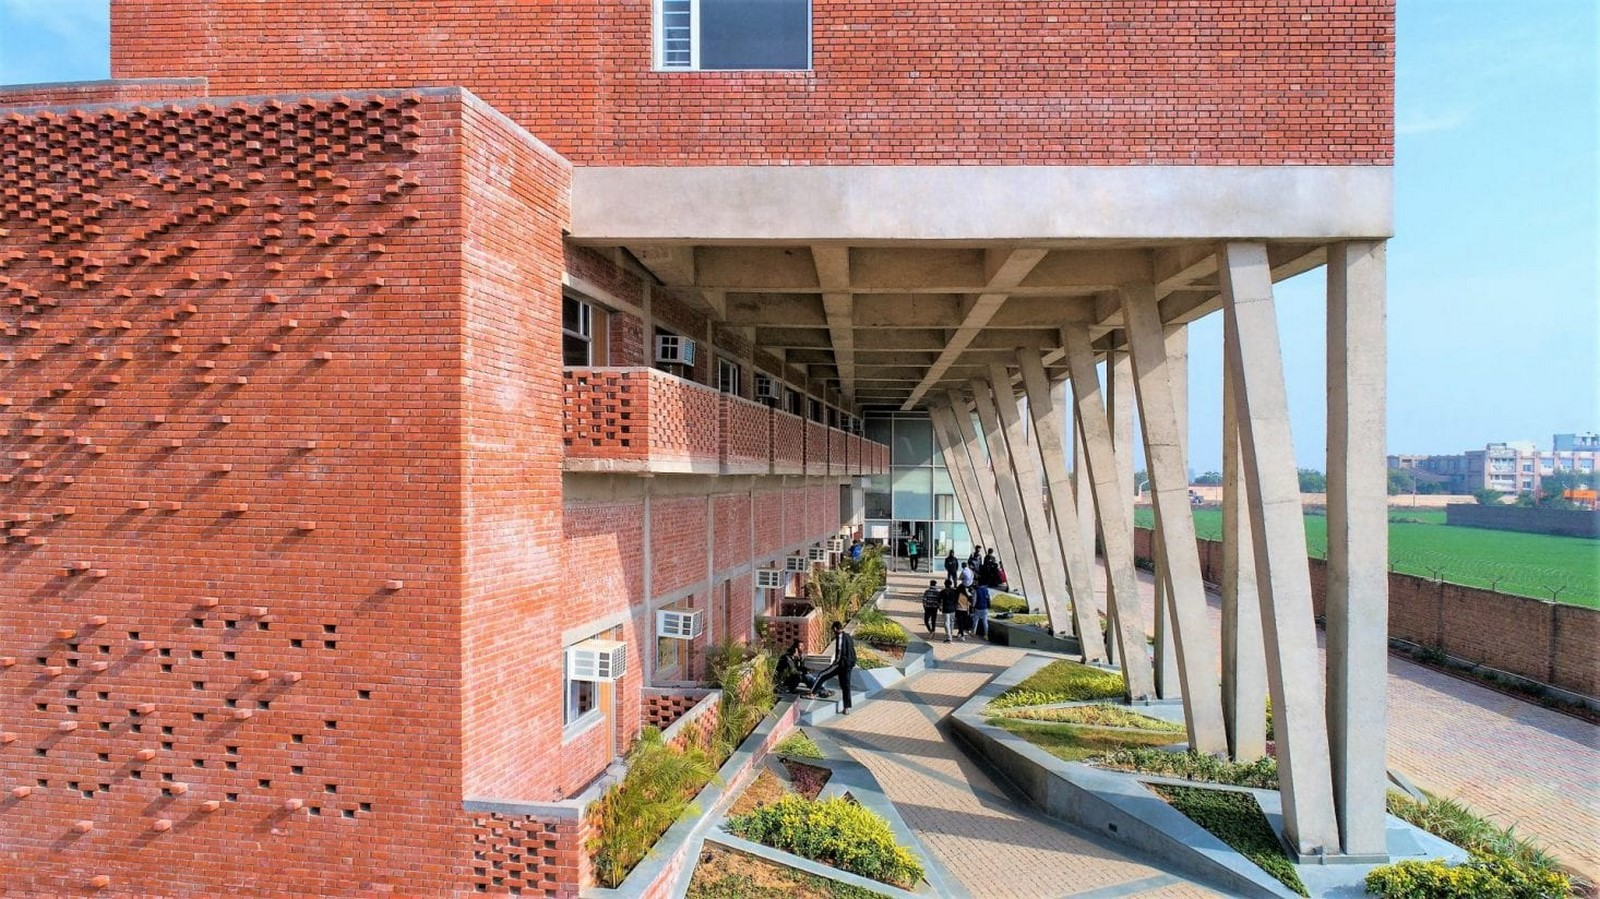 India's St. Andrews boys hostel designed with sustainability in mind by by ZED Lab - Sheet14